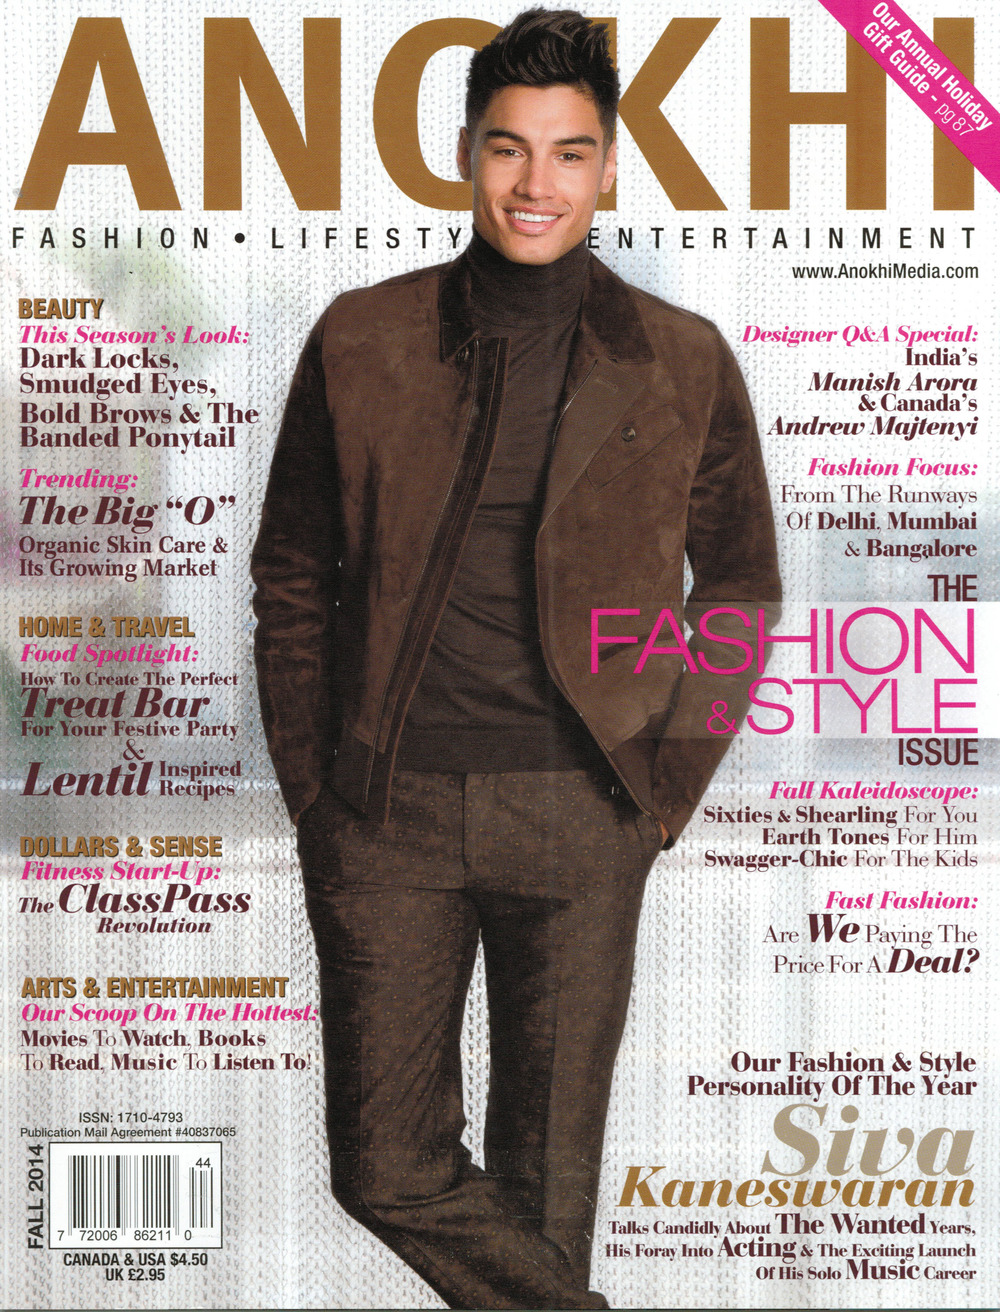 Lacc_Anokhi_Holiday_14_cover.jpg